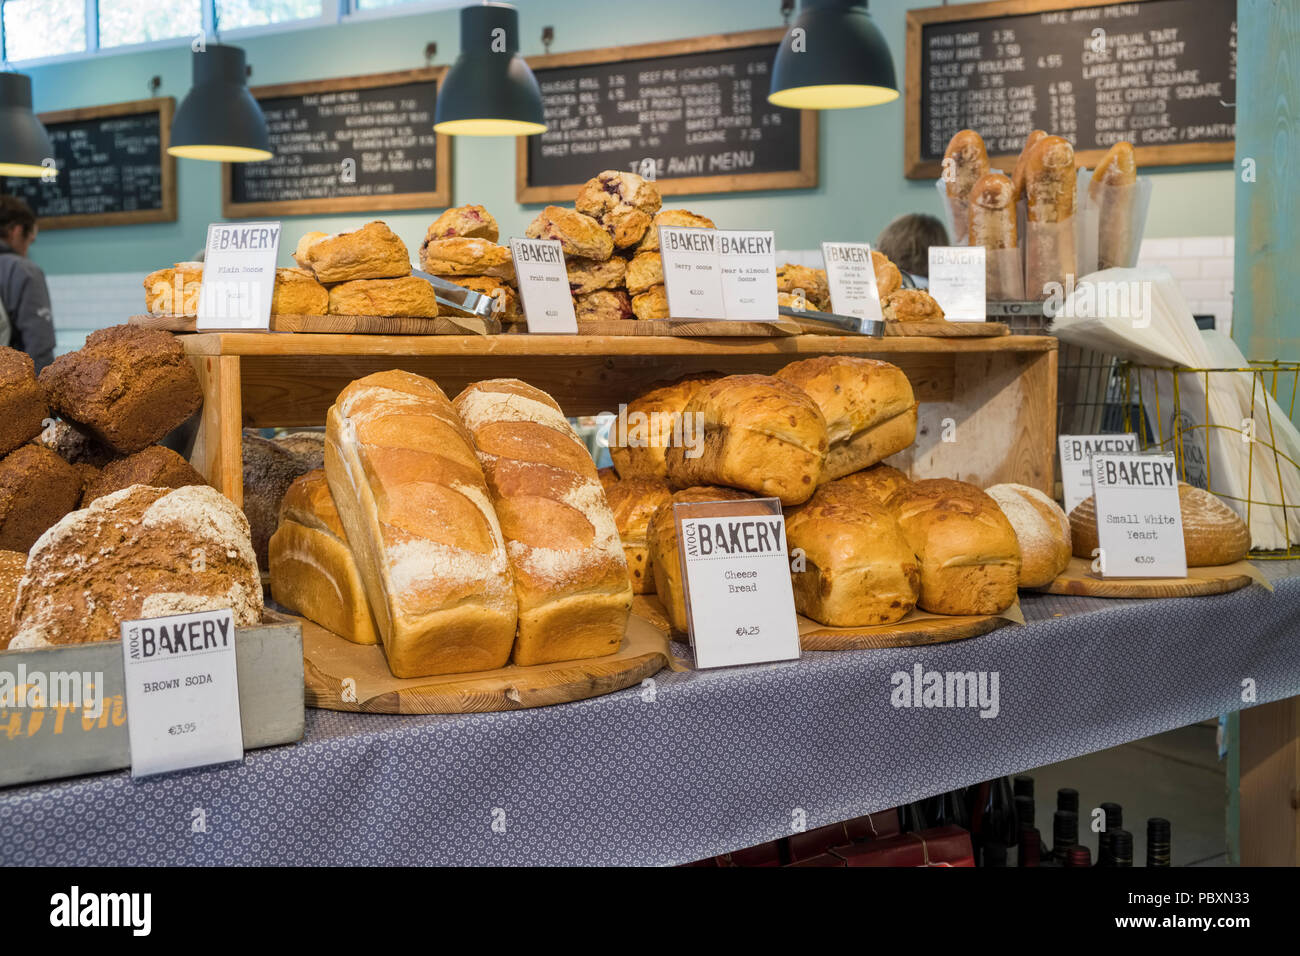 Speciality bread on display inside a bakery, Republic of Ireland, Europe - Stock Image